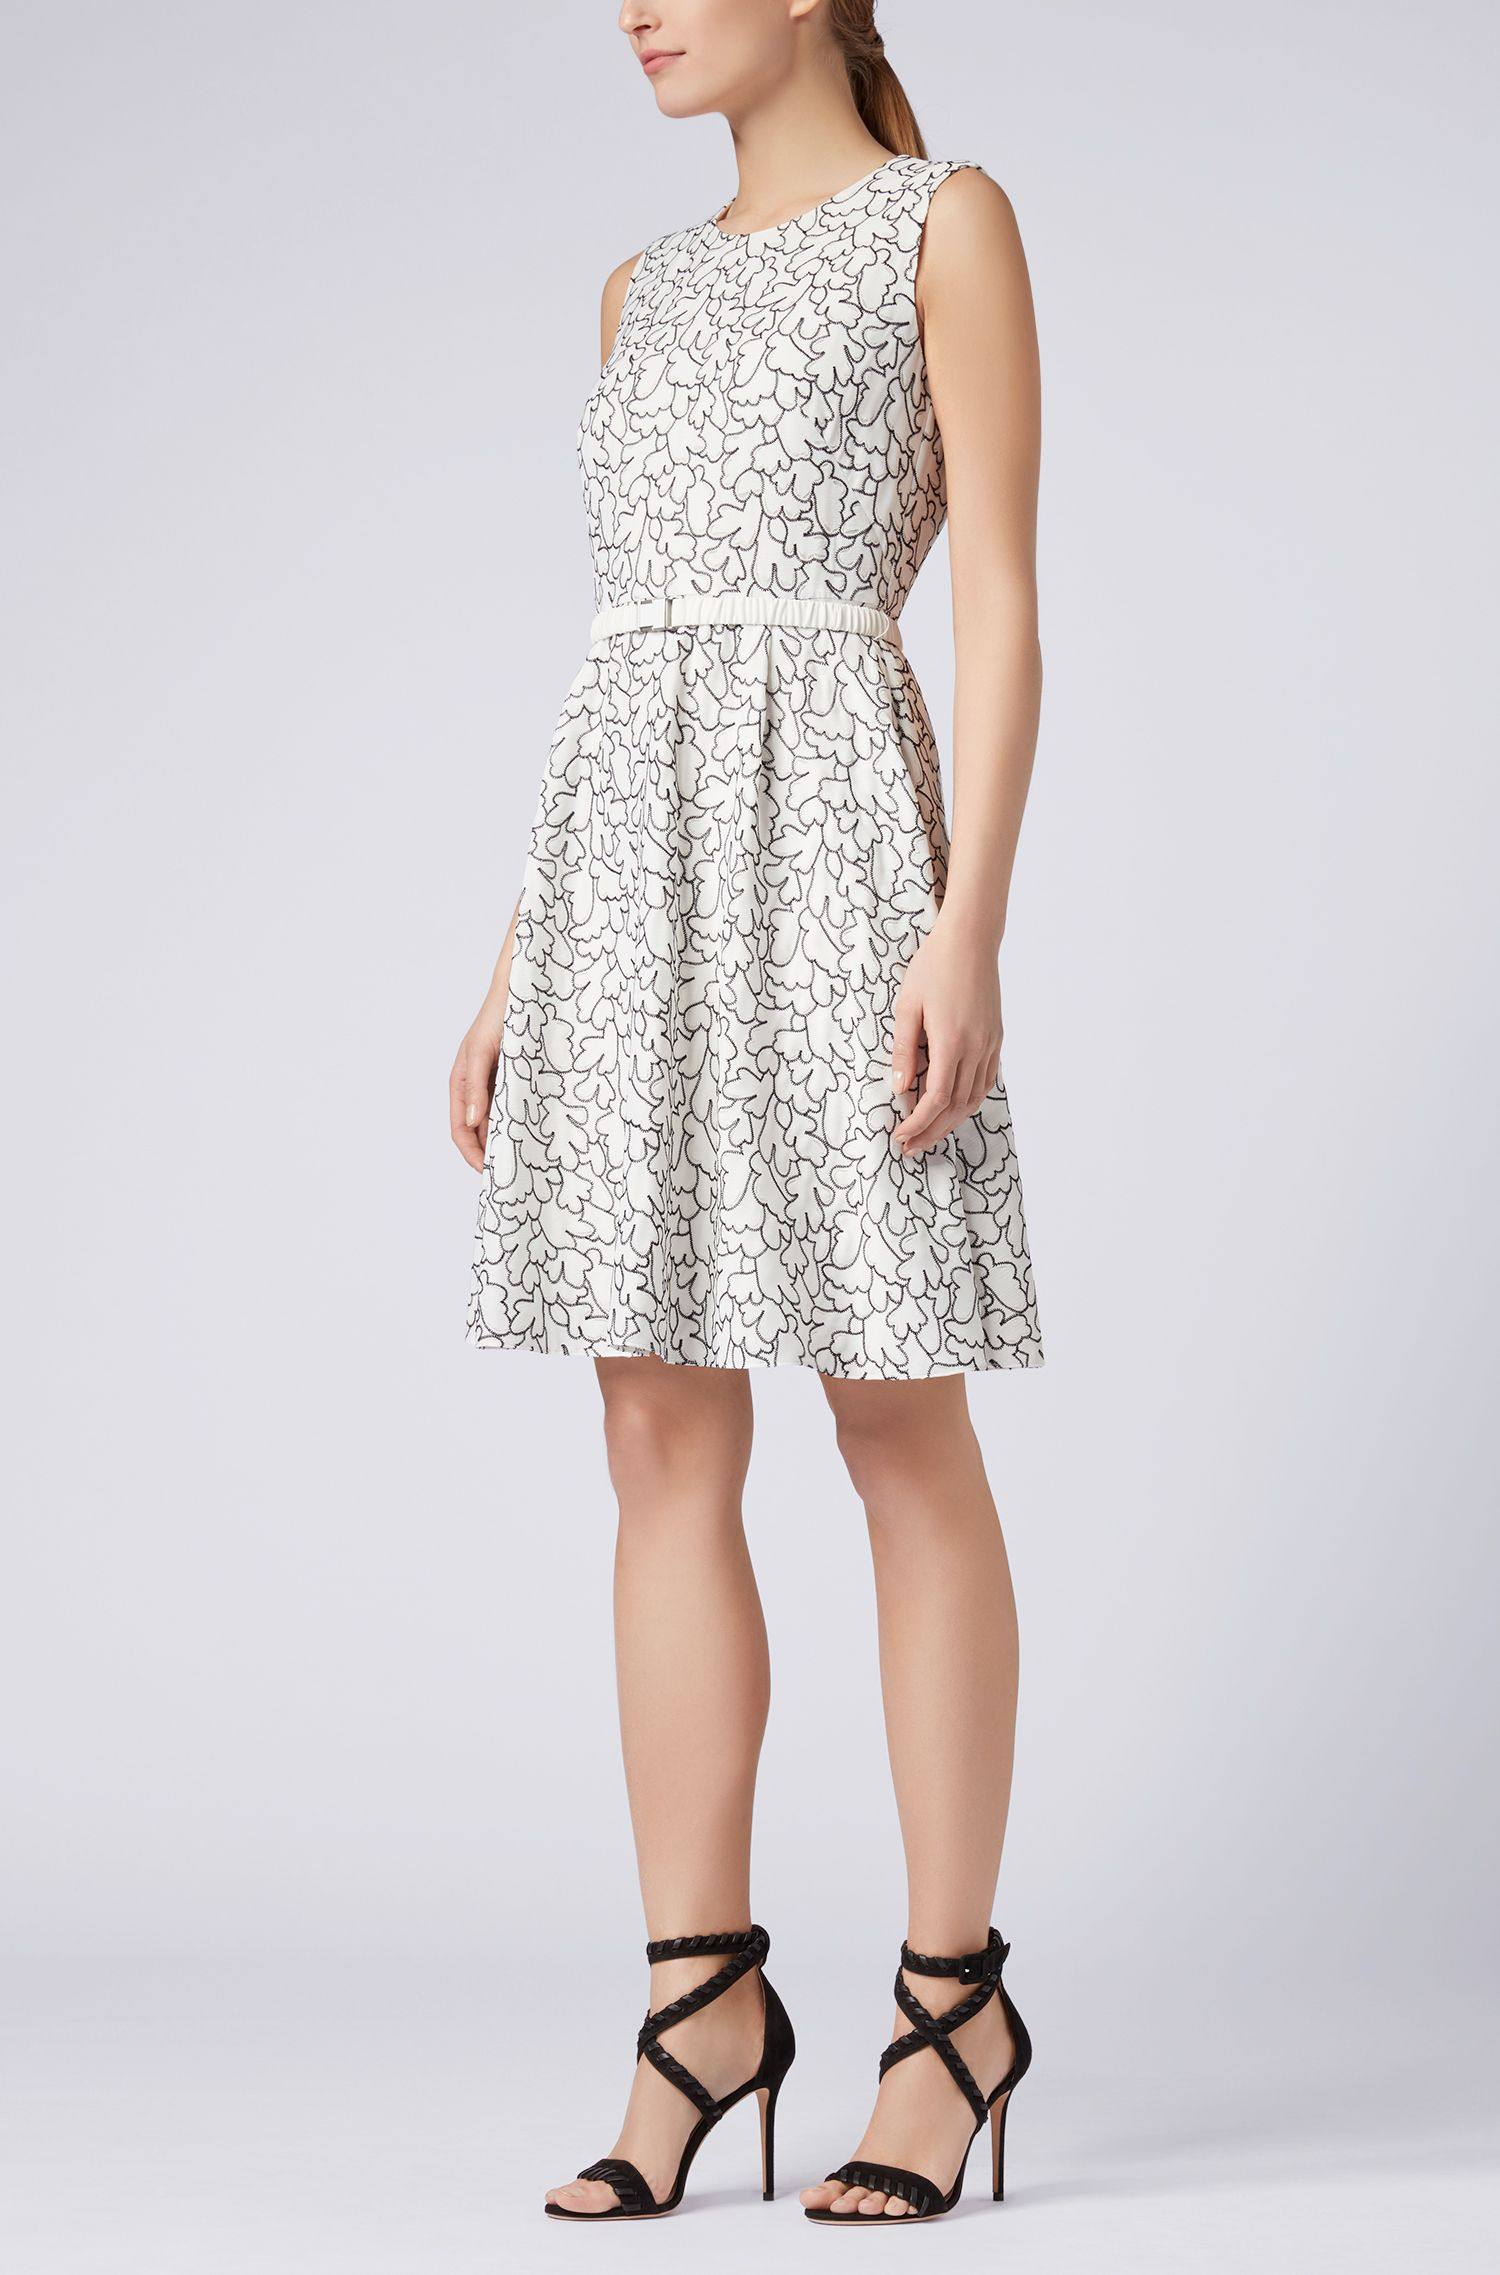 Sleeveless embroidered dress with belt, Patterned